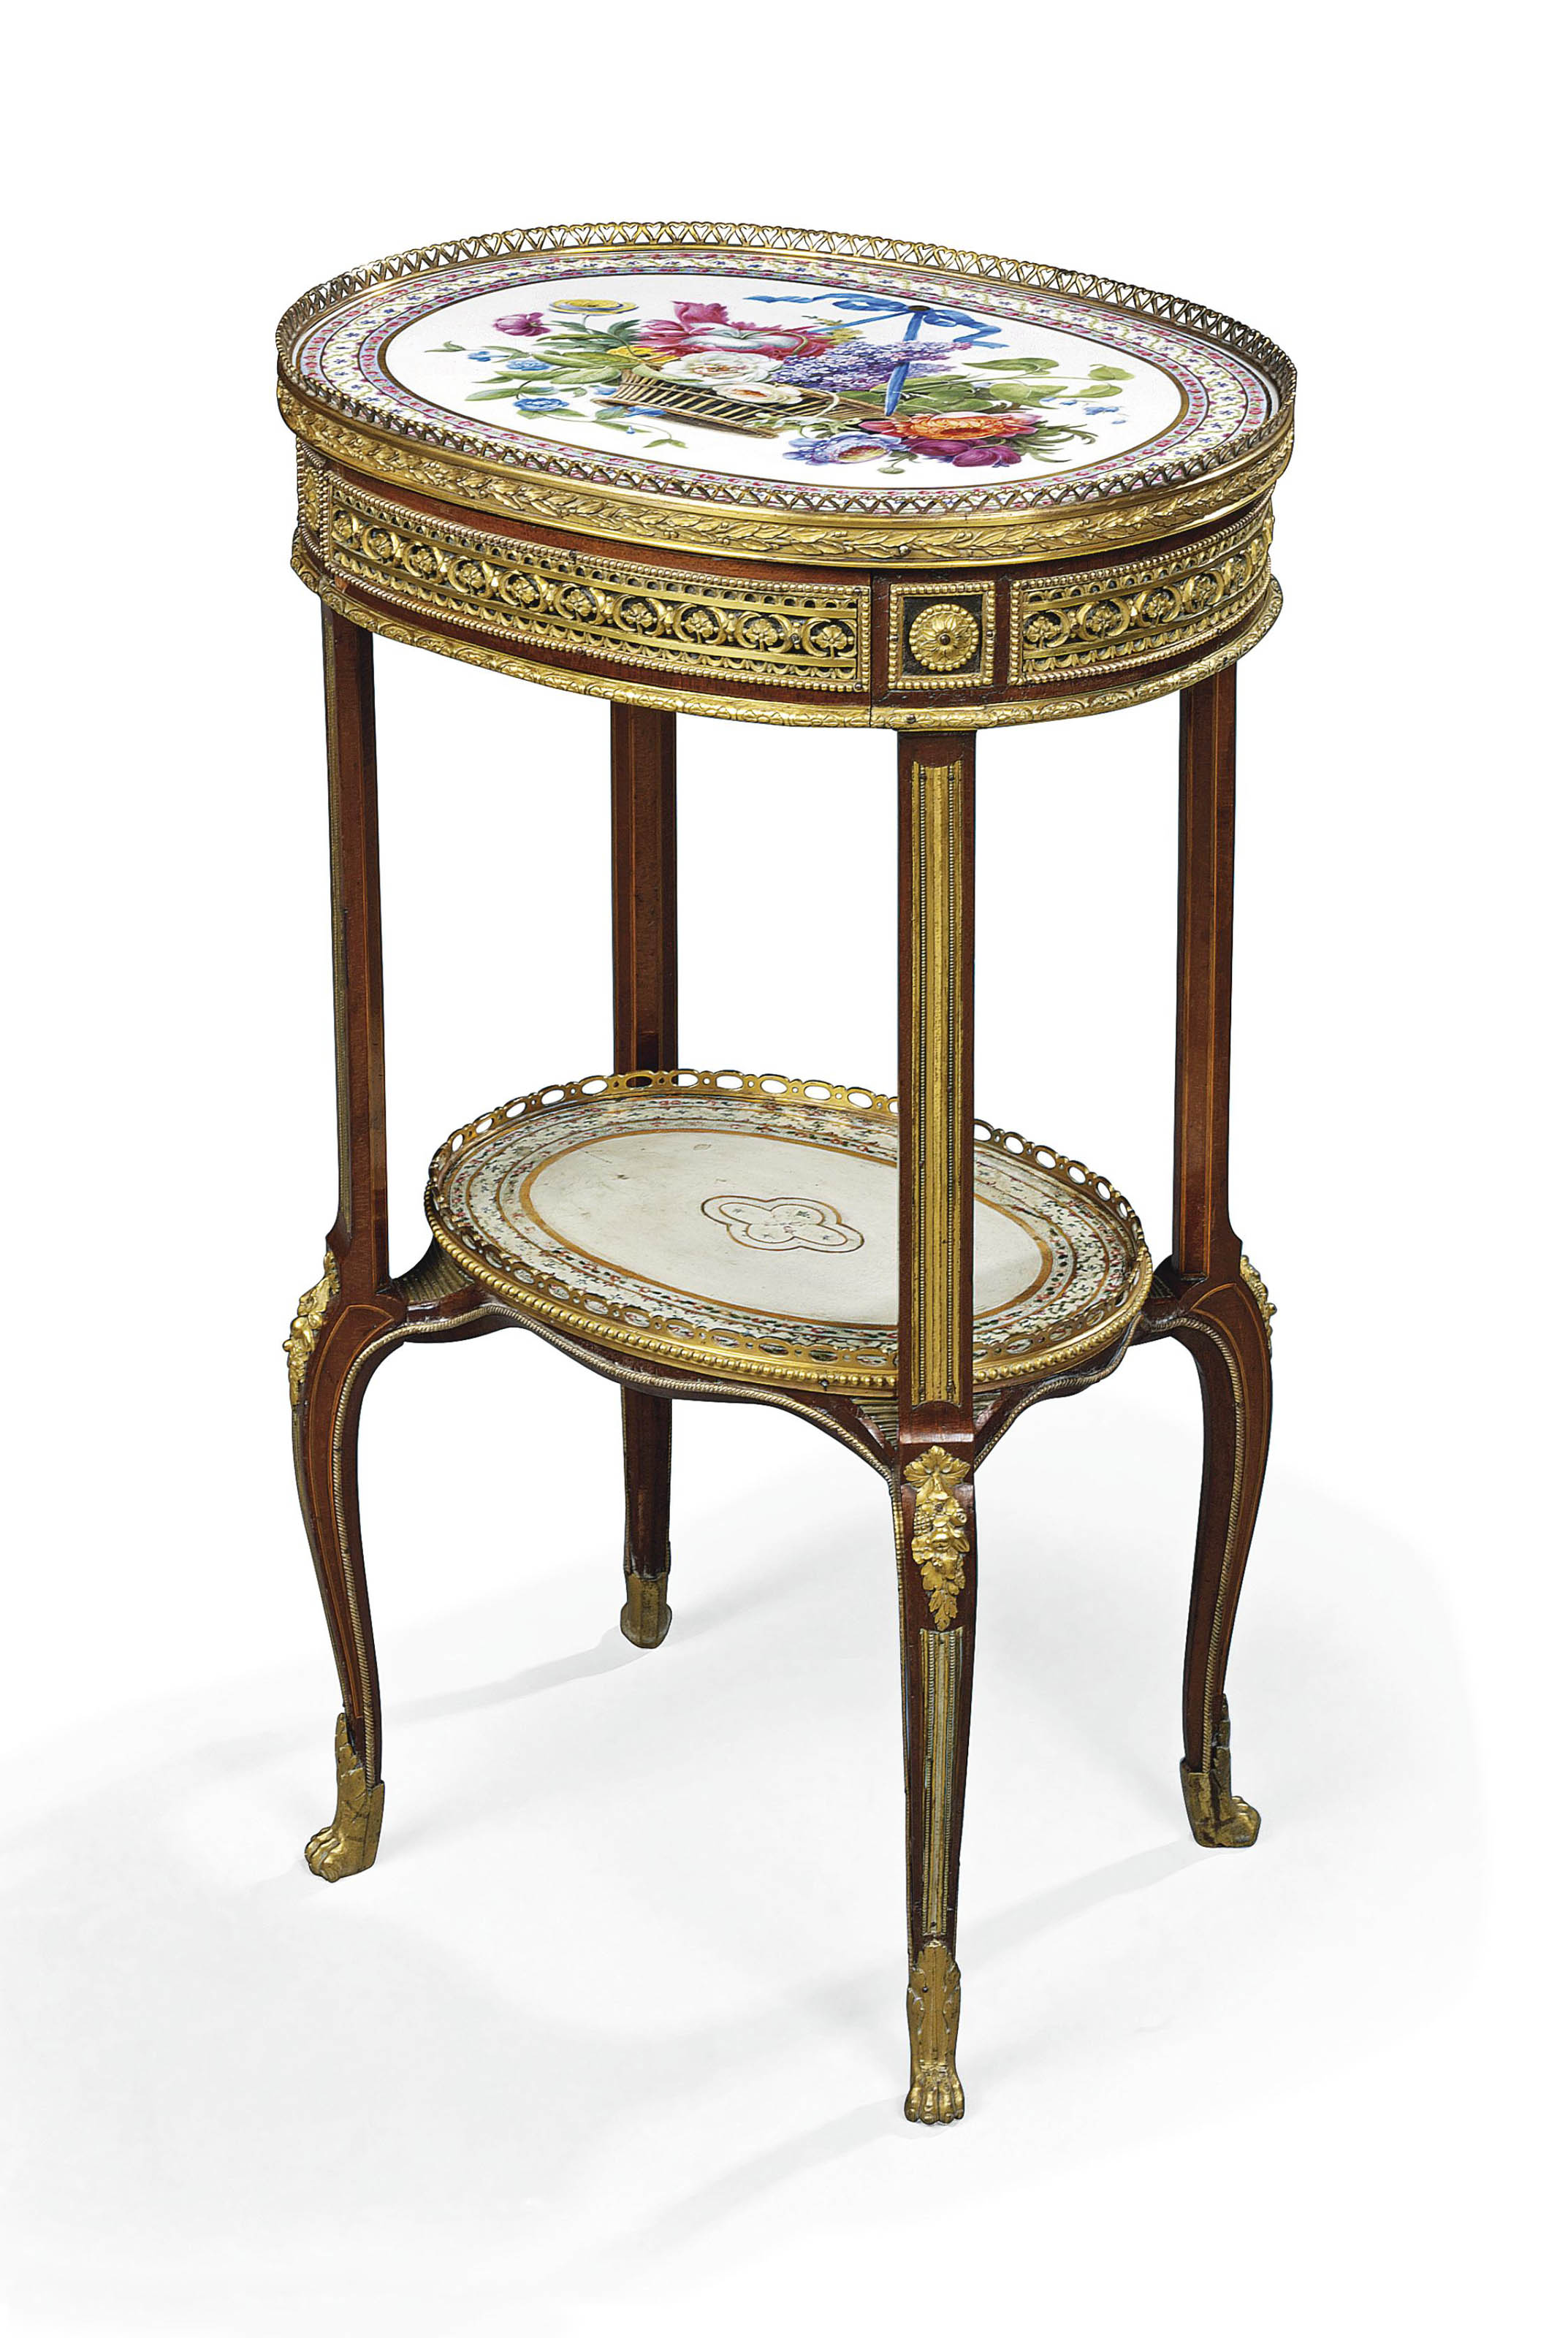 A LOUIS XVI ORMOLU-MOUNTED, SEVRES PORCELAIN AND SYCAMORE GUERIDON